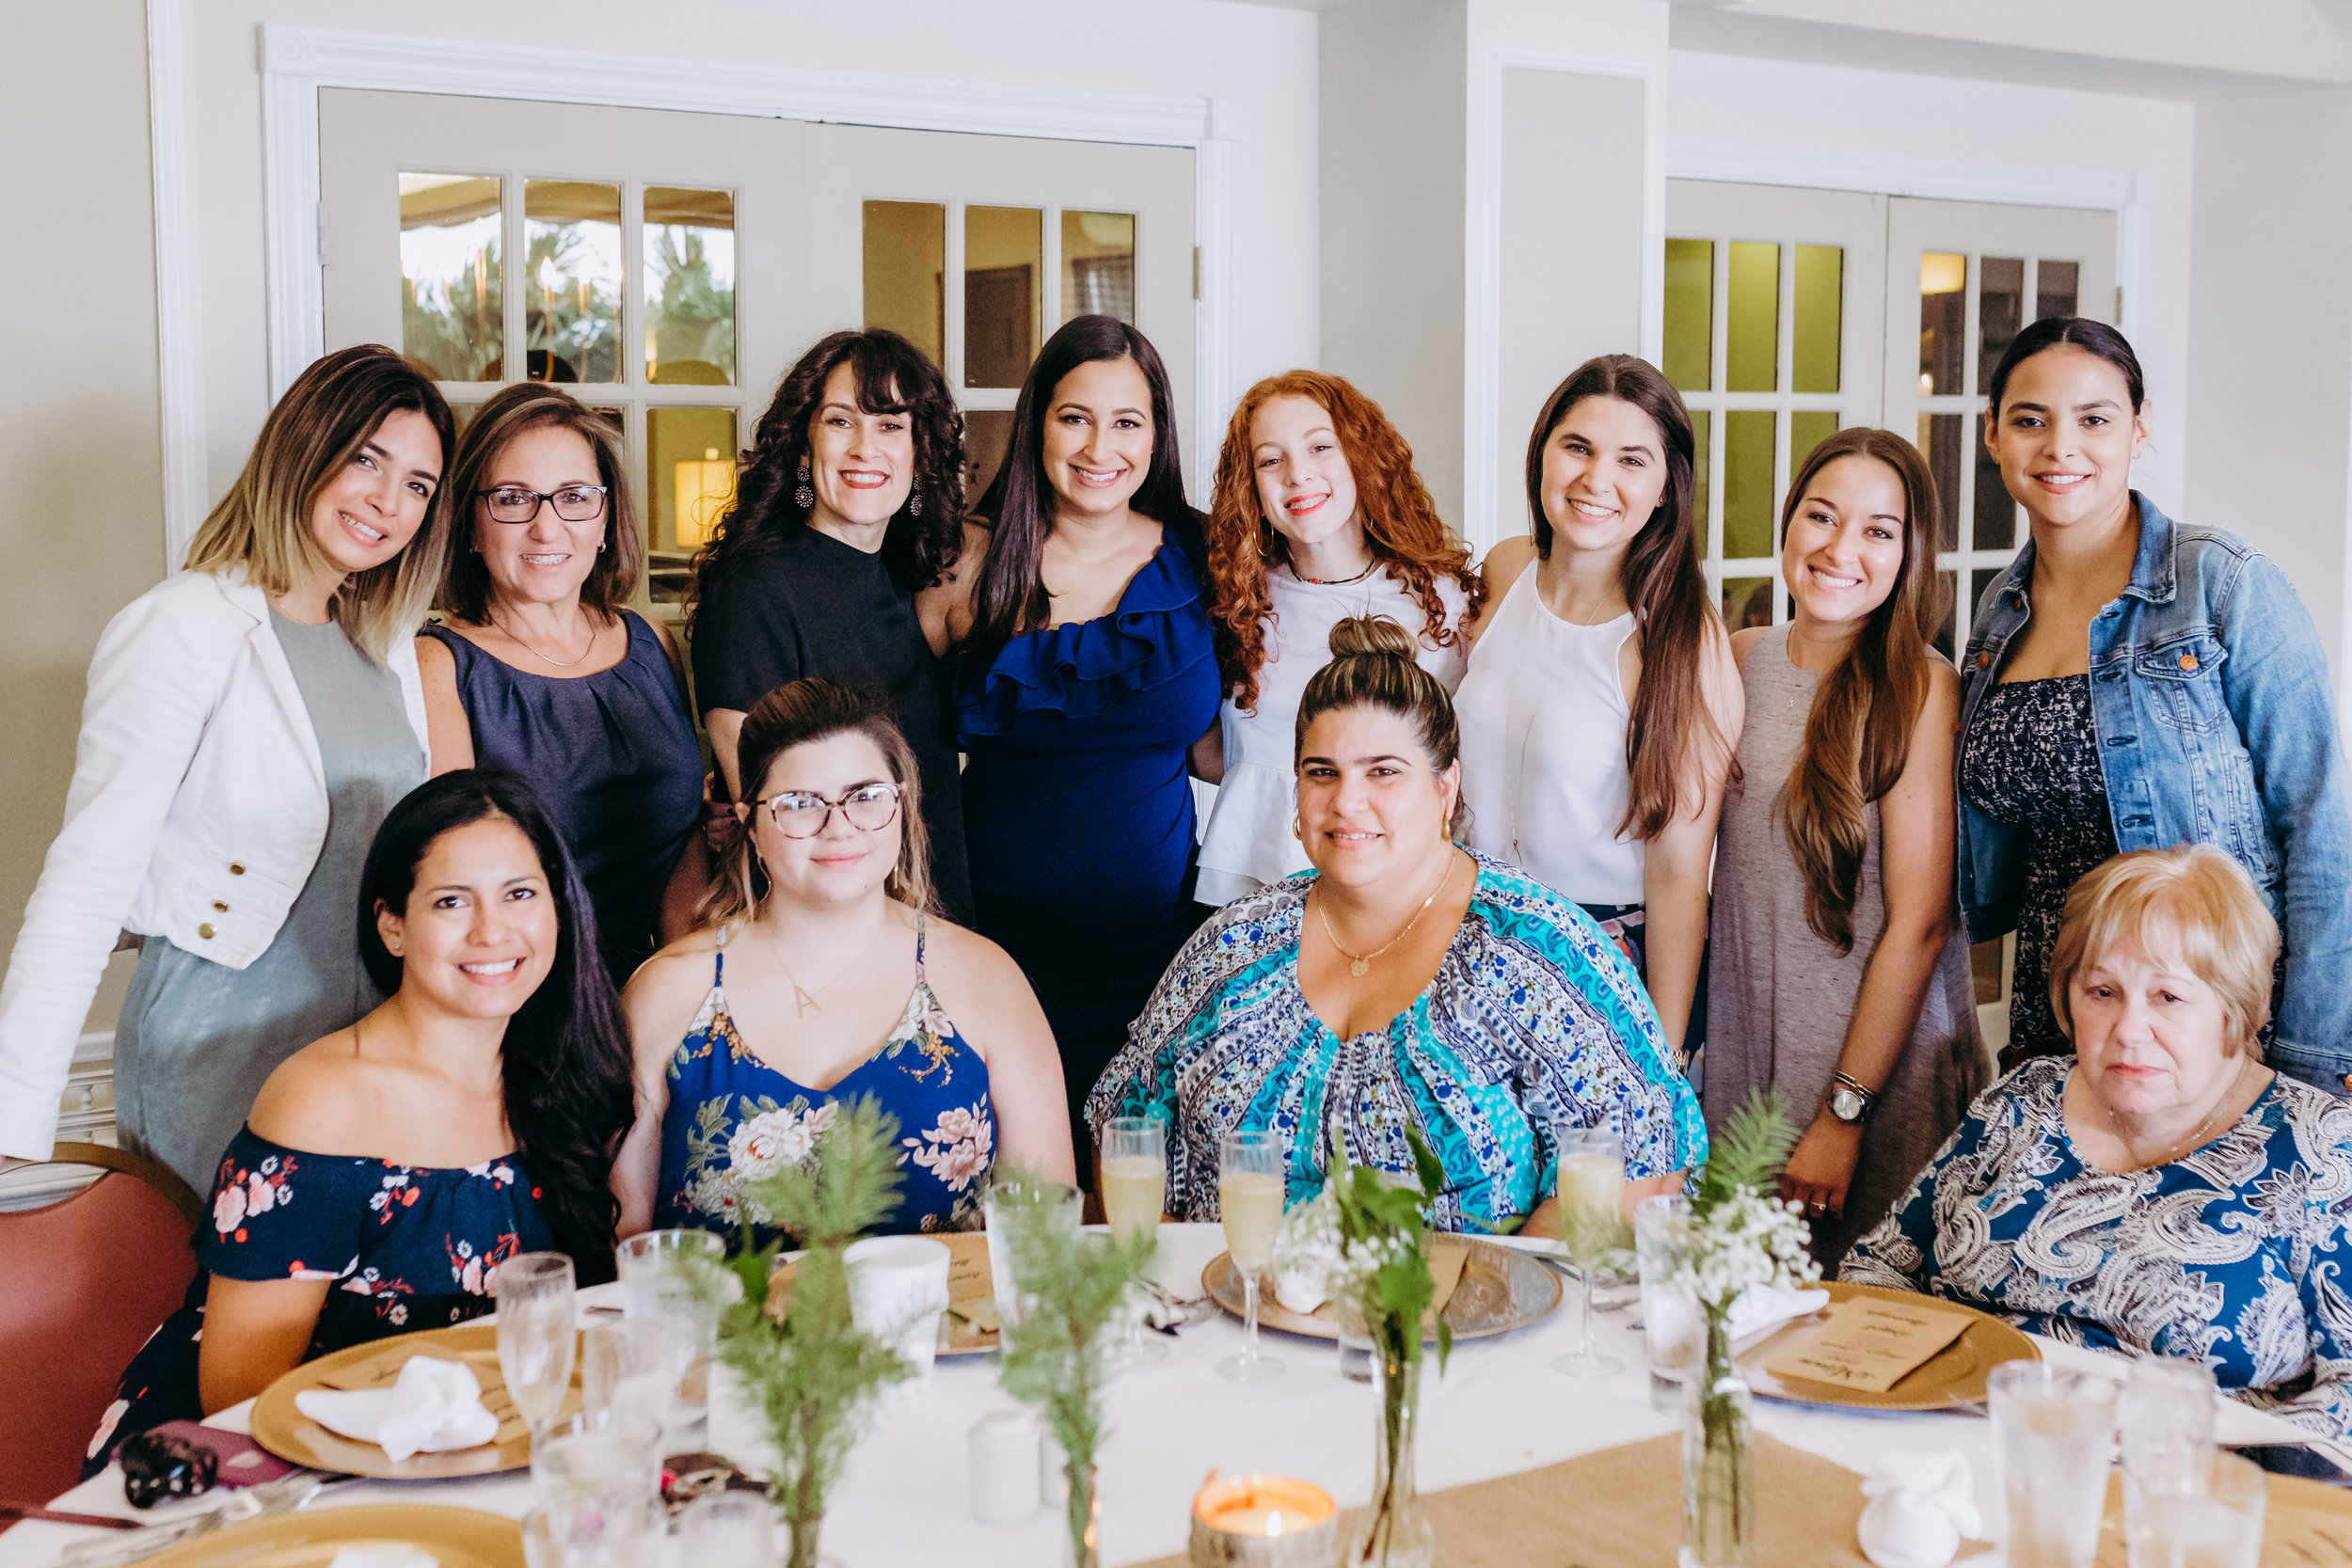 South-Florida-Photographer-Events-Baby-Shower-Photography-Fort-Lauderdale